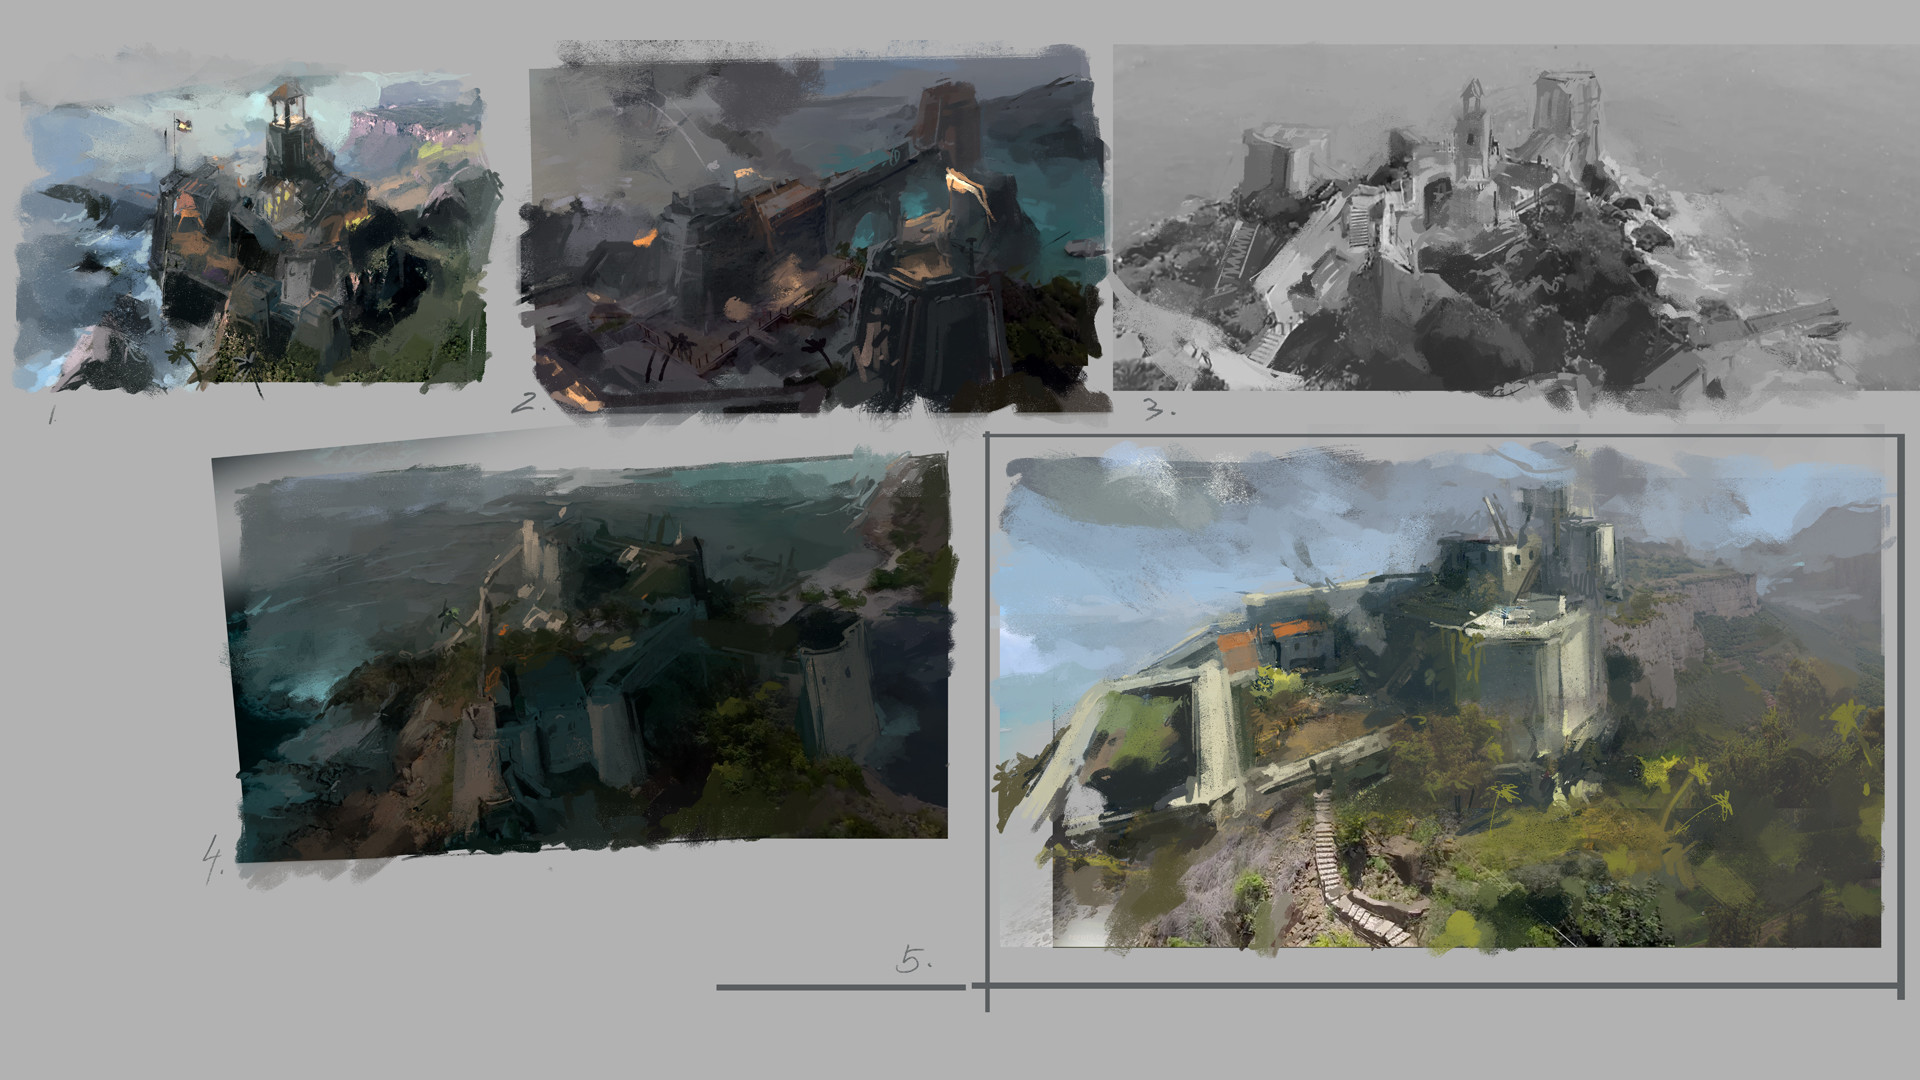 Sergey musin fort explorationsheet